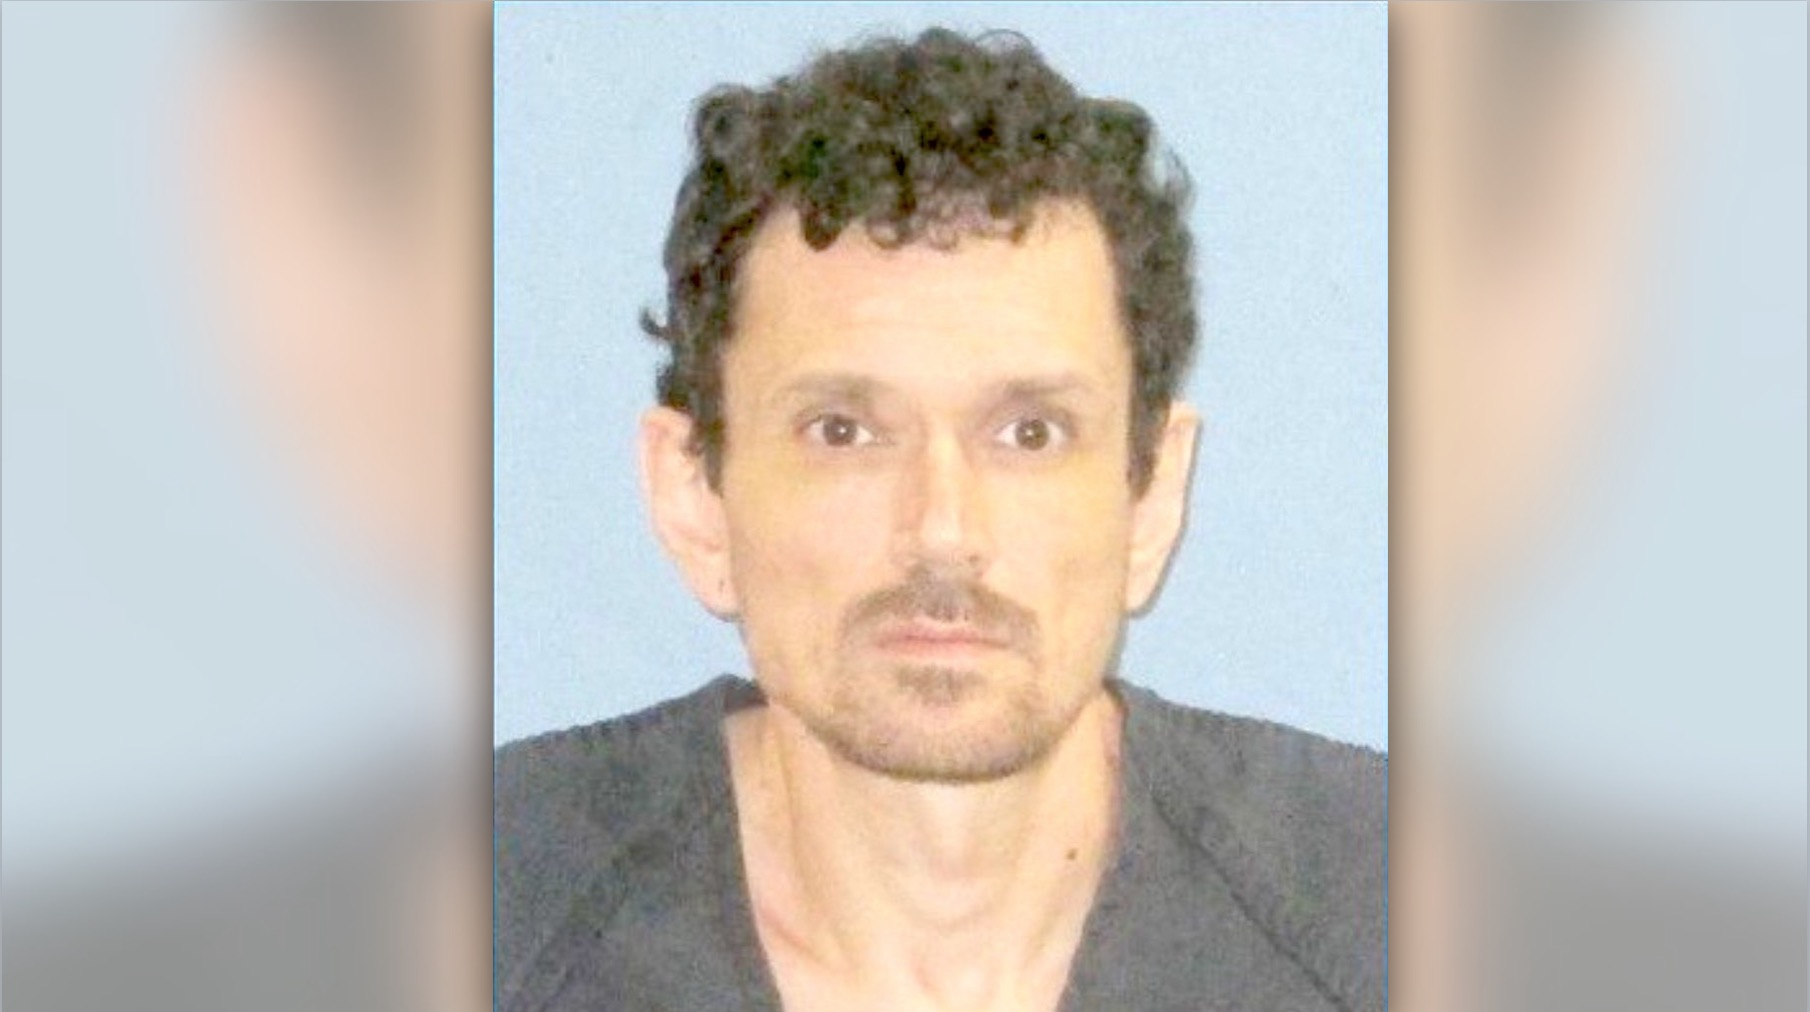 Arkansas Man Arrested for Leaving Son in Hot Car as Punishment